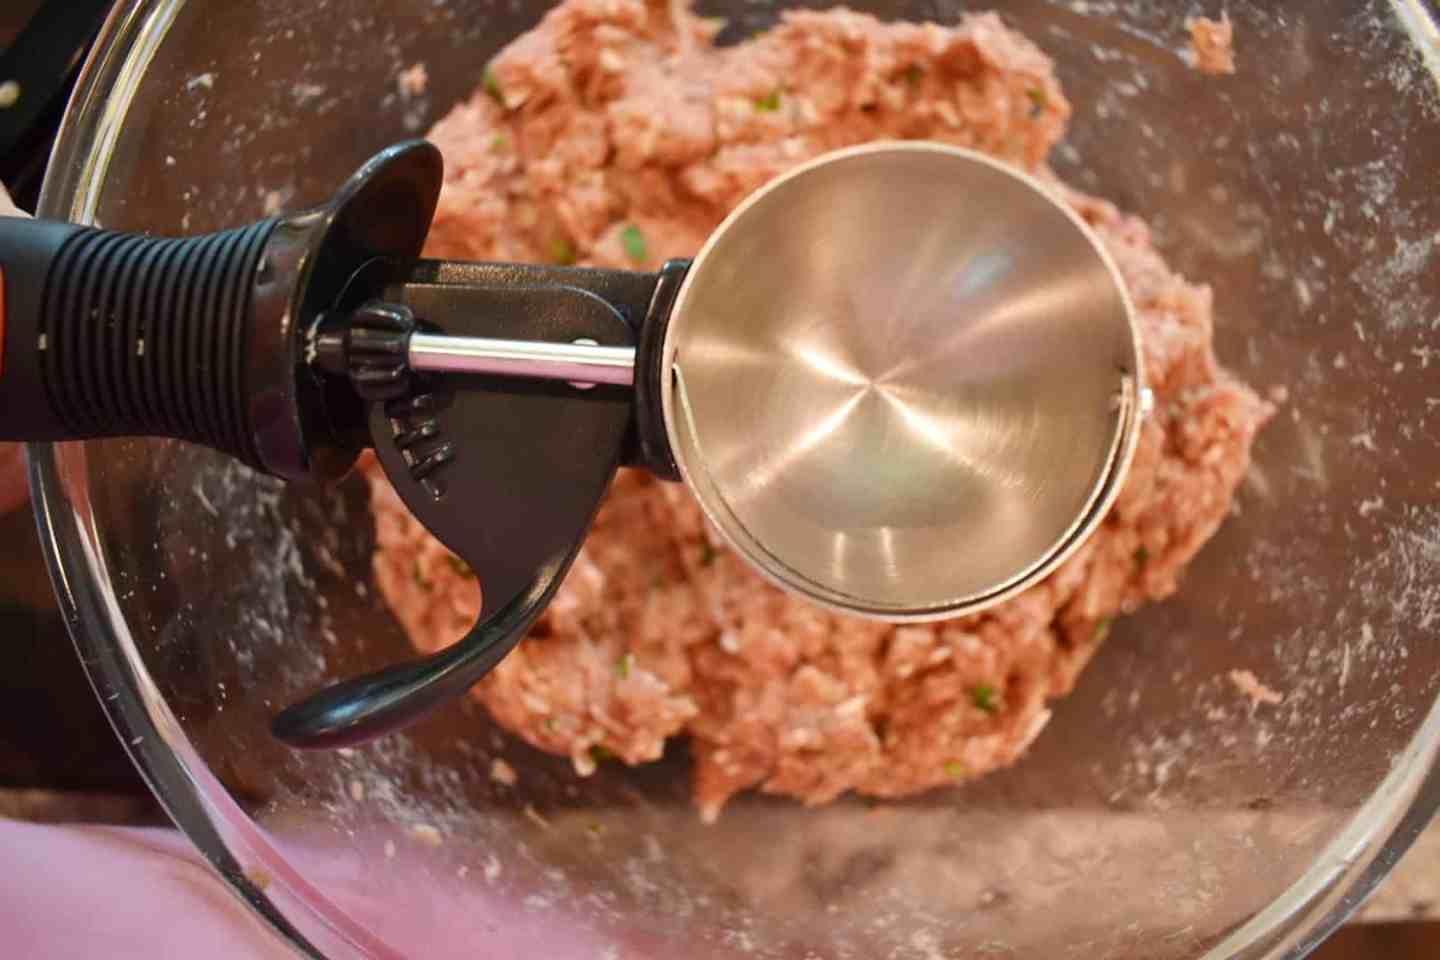 ice-cream-scoop-to-form-meatballs